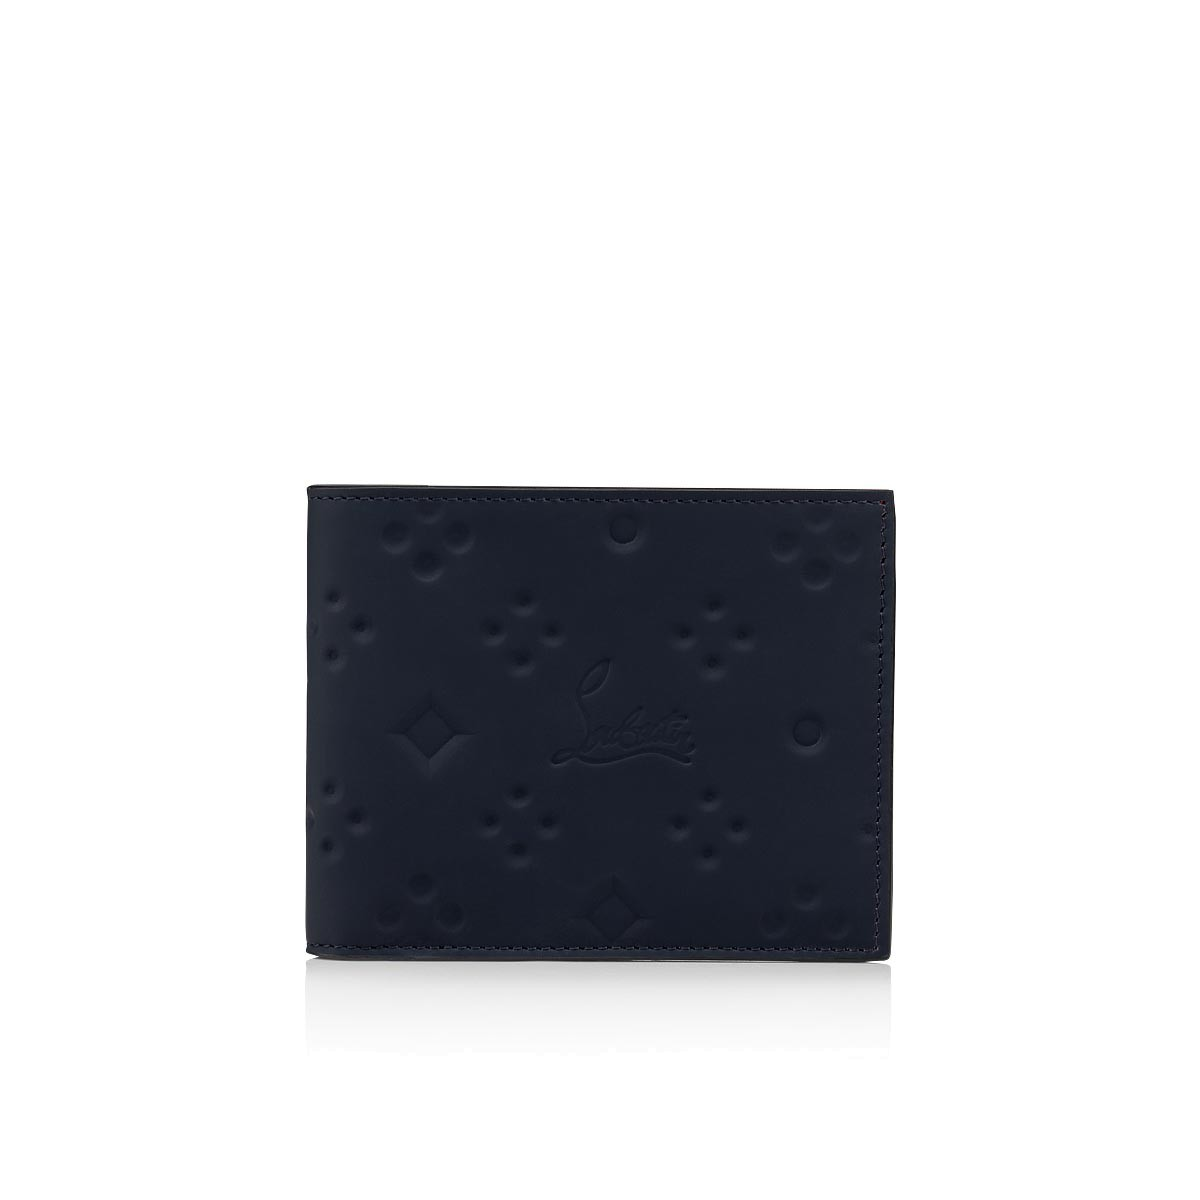 Small Leather Goods - Coolcard Wallet - Christian Louboutin